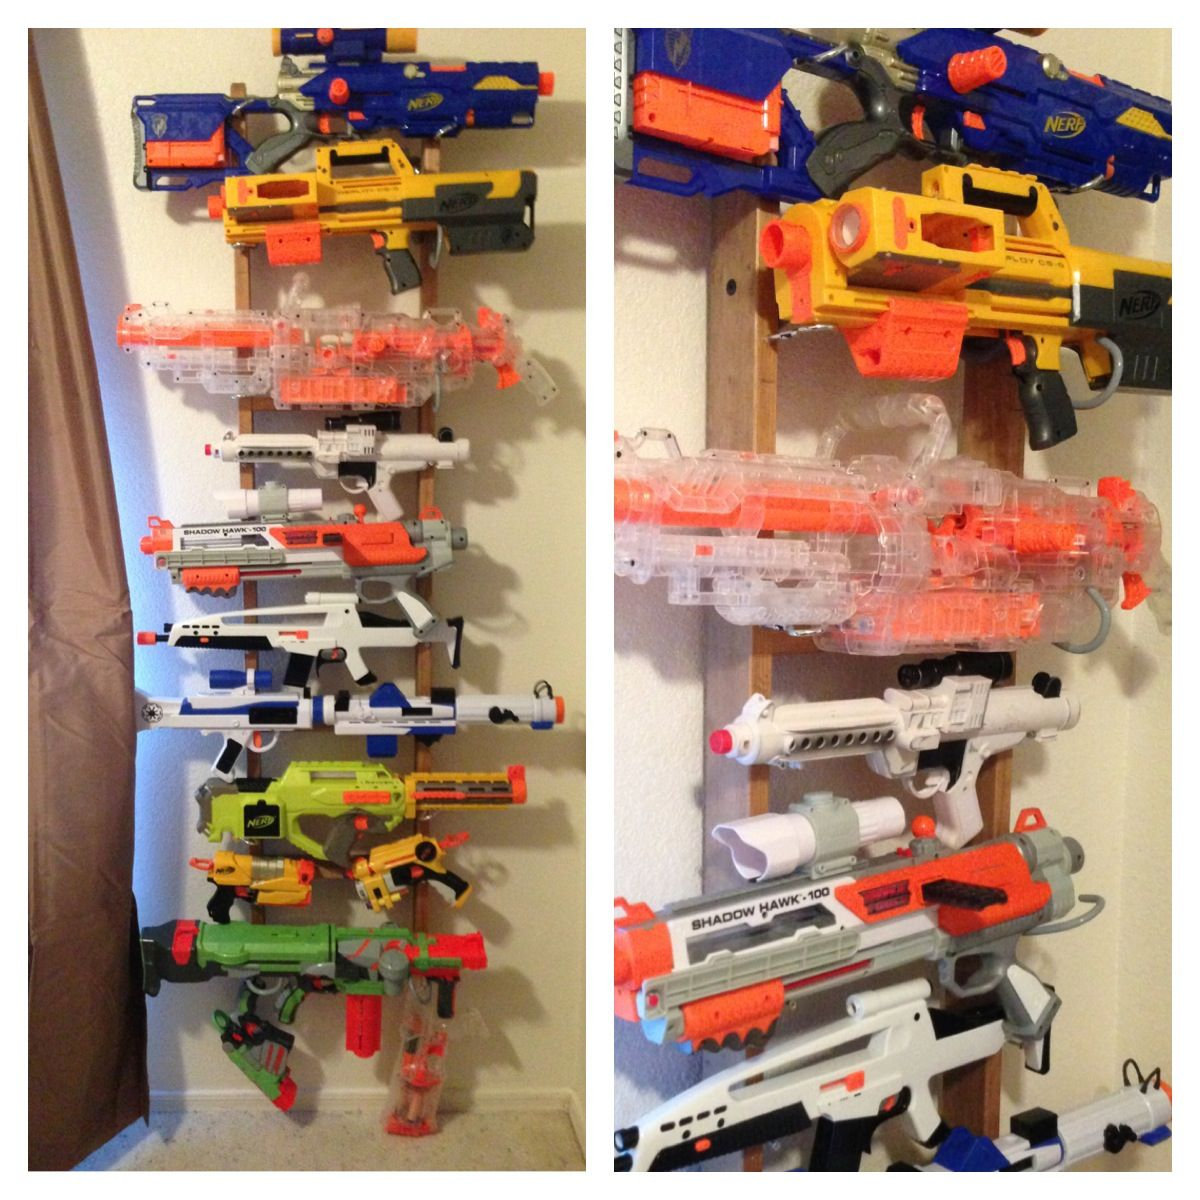 DIY Nerf gun rack- used a ladder from an old bunk bed. Used various